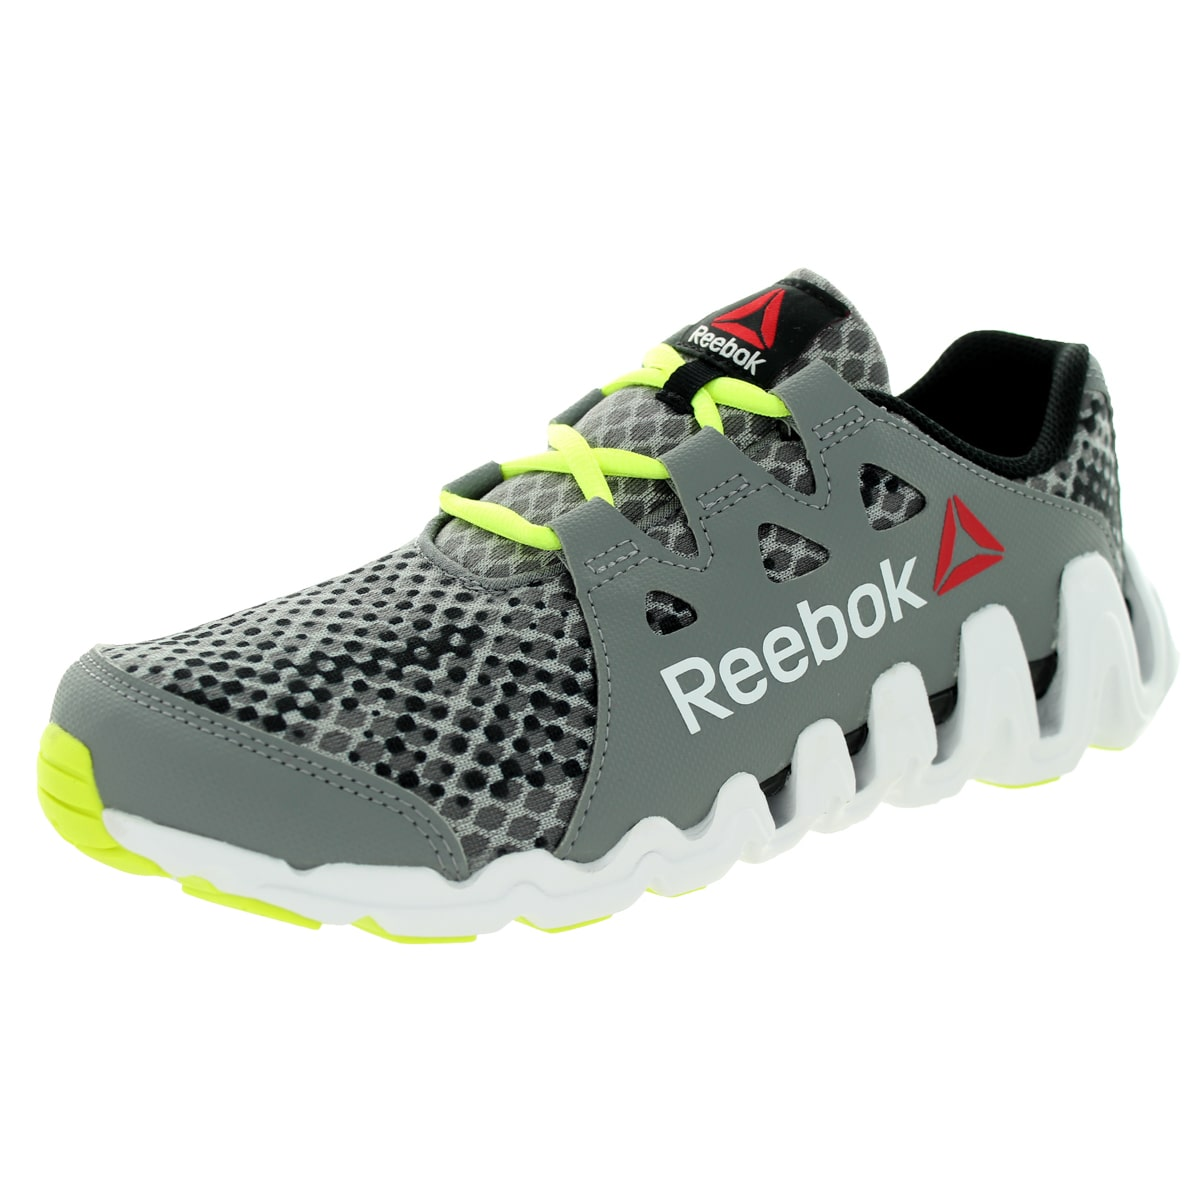 Reebok Reebok Kid's Zigtech Big N Fast BlackYellowWhite Running Shoe